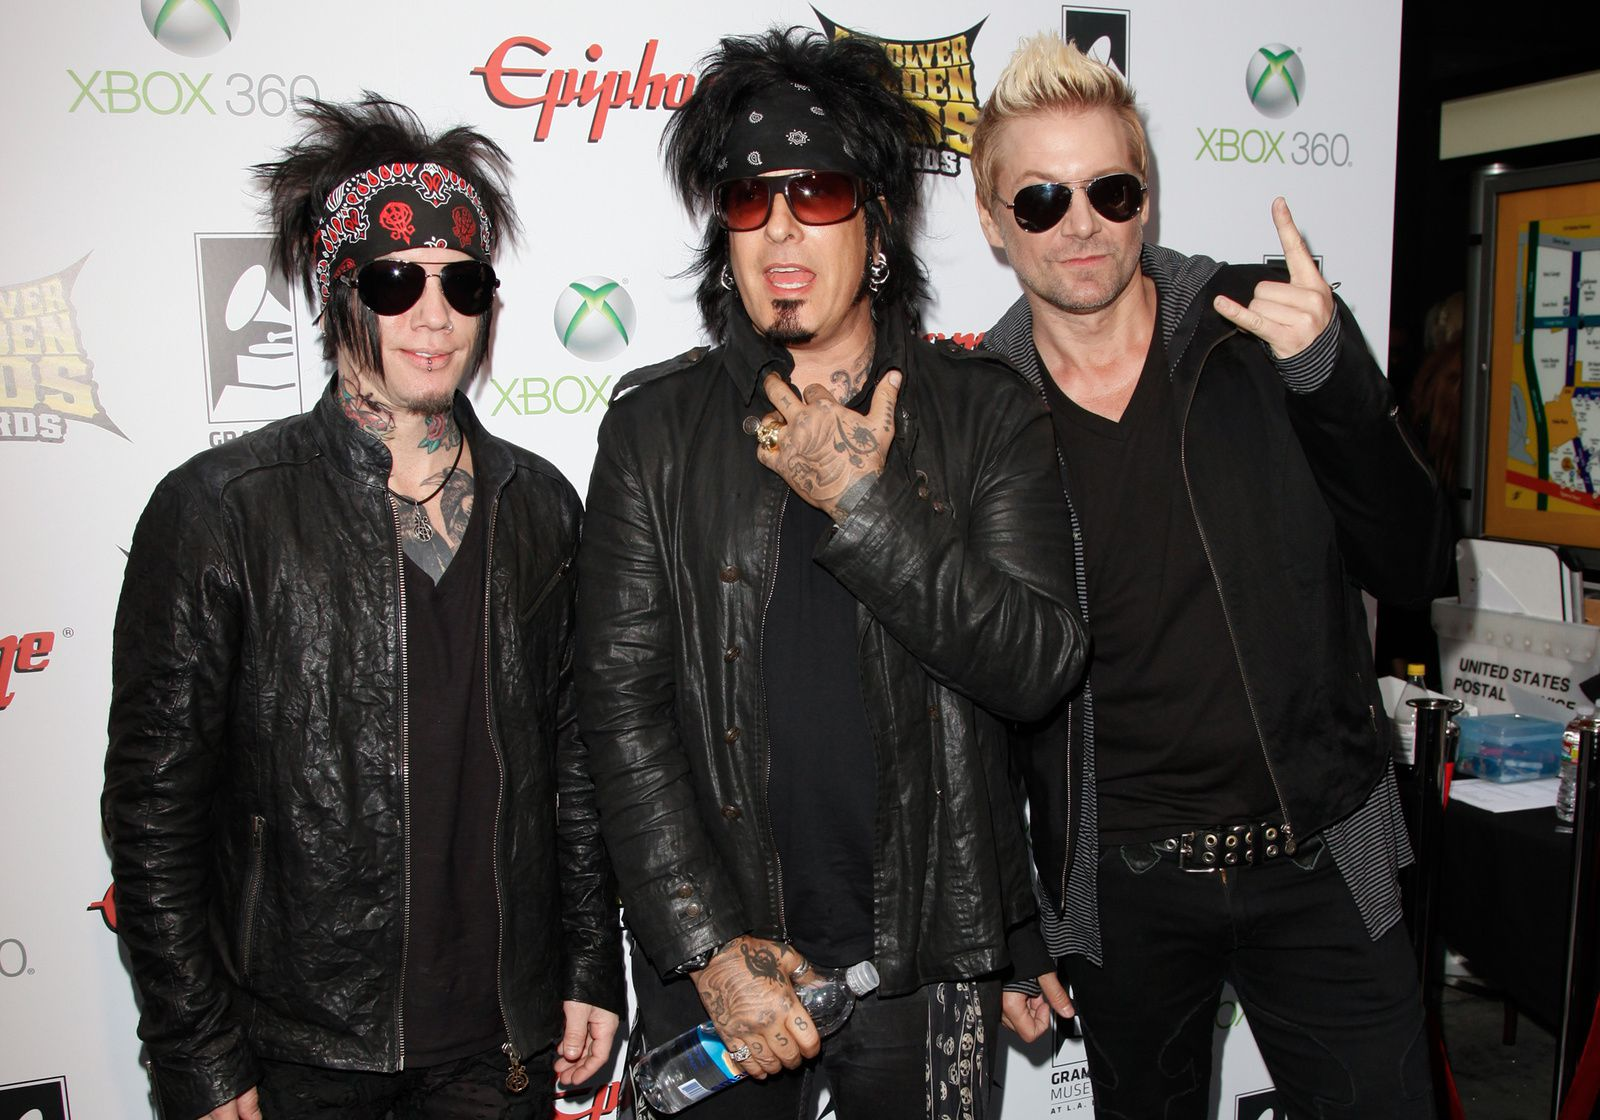 James Michael, Nikki Sixx and Dj Ashba, Sixx:A.M. (2012) - credit: MTV